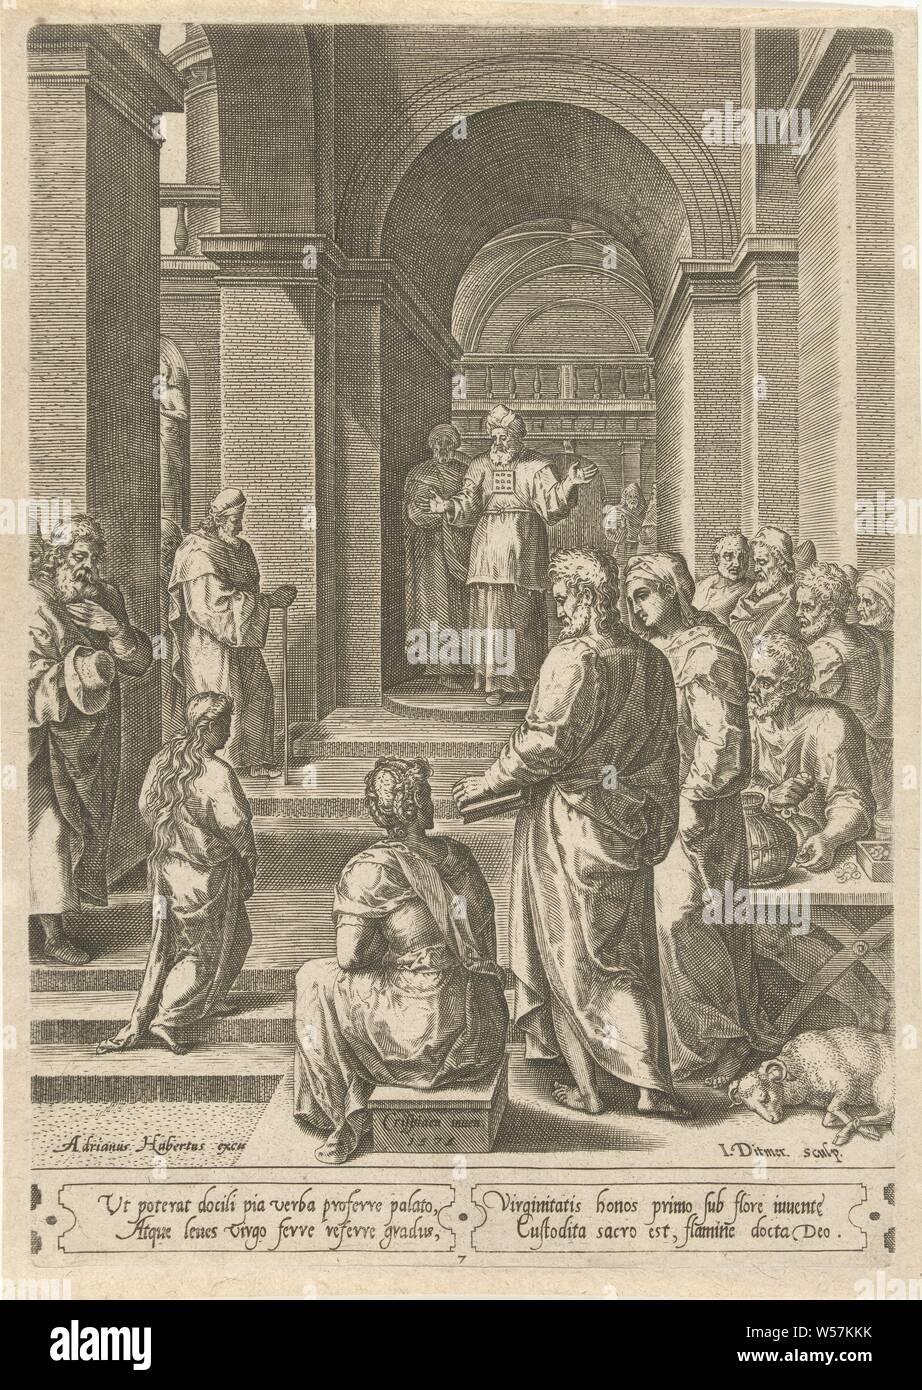 Mission of Mary in the temple, she becomes received by the high priest. Below four lines of Latin text., Dedication (or presentation) or Mary in the temple: she ascends the steps and is received by the high priest, Jan Ditmaer (mentioned on object), 1575, paper, engraving, h 262 mm × w 182 mm Stock Photo